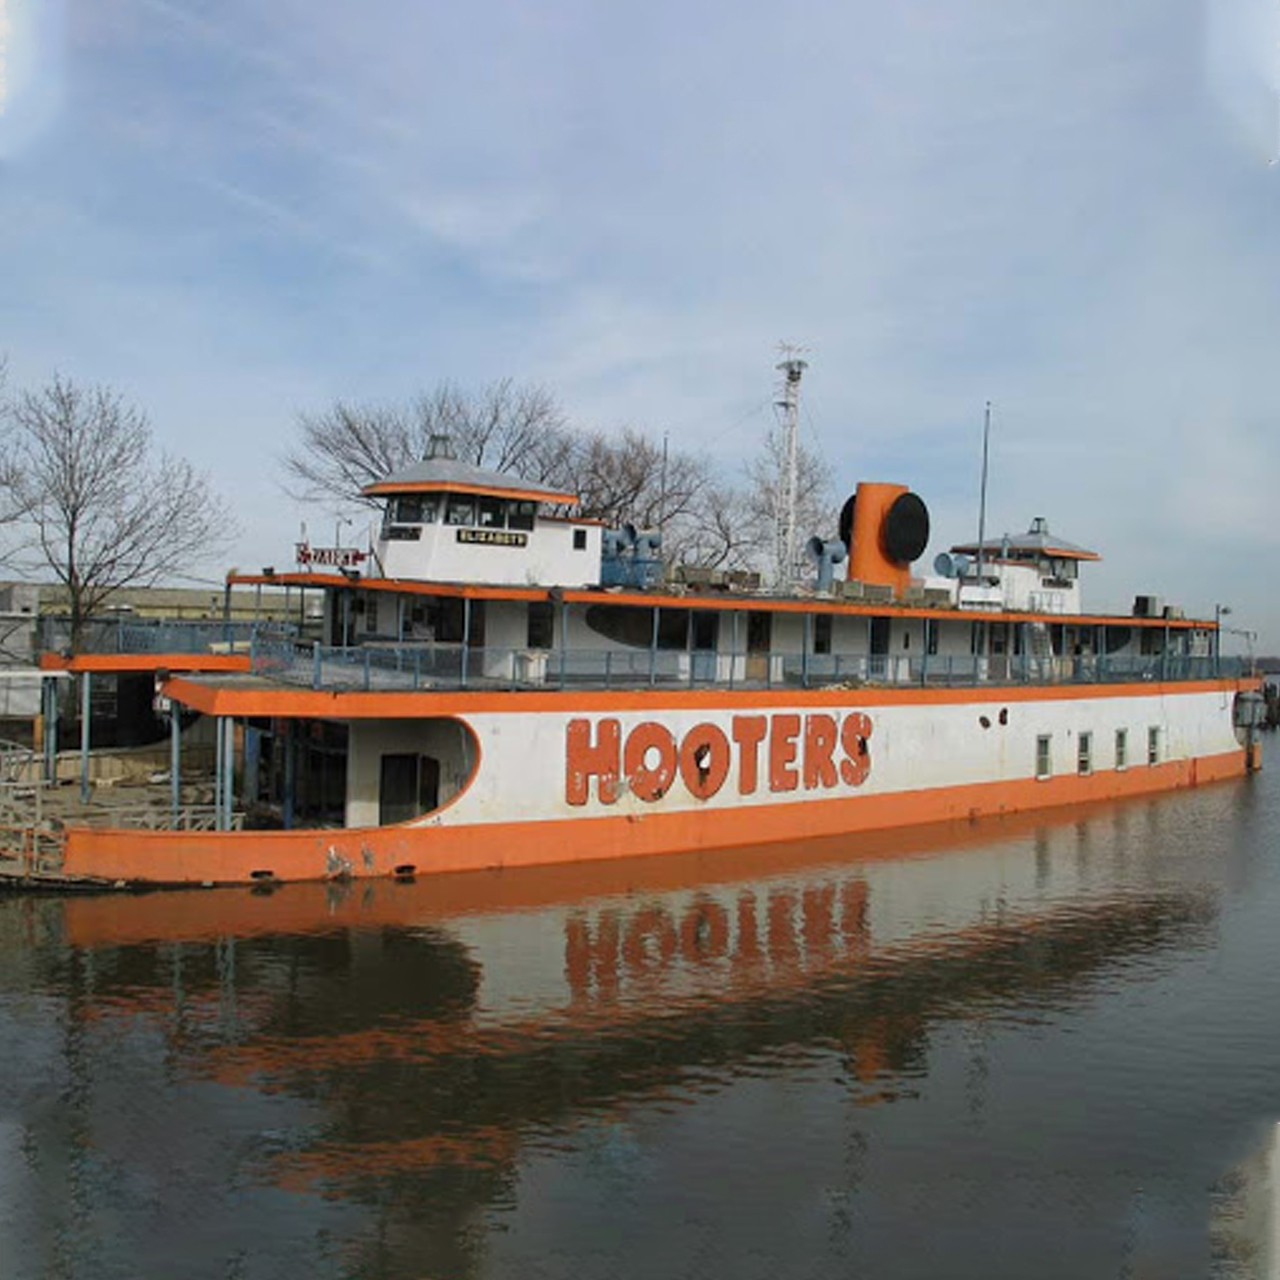 The SS United States Vs The Hooters Boat